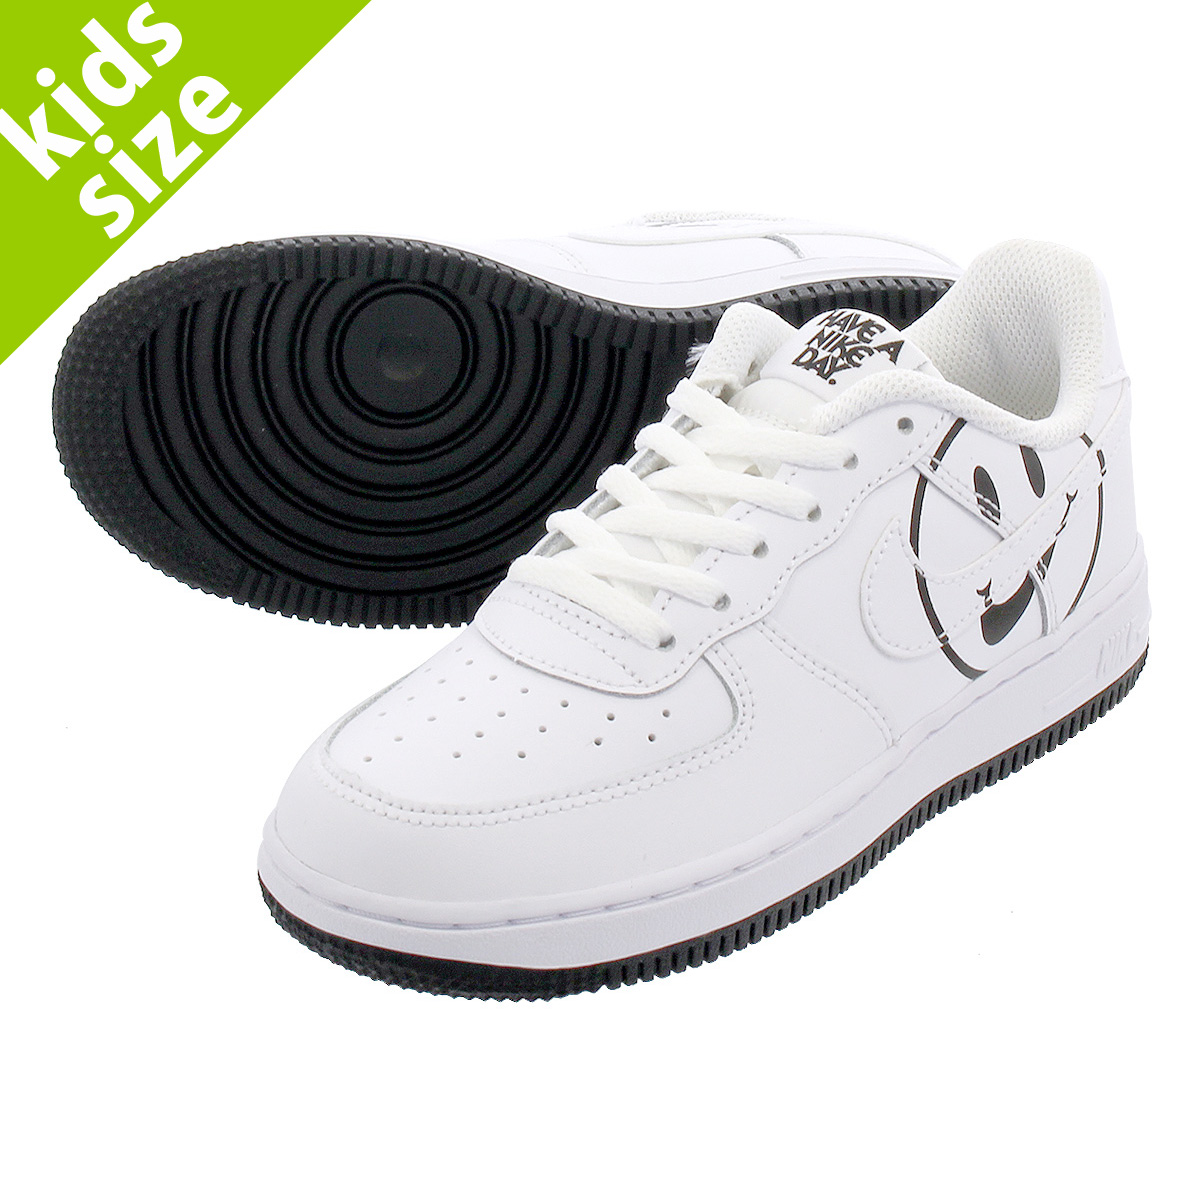 【キッズ サイズ】【16cm-22cm】 NIKE AIR FORCE 1 LV8 2 PS 【HAVE A NIKE DAY】 ナイキ エアフォース 1 LV8 2 PS WHITE/BLACK bq8274-100